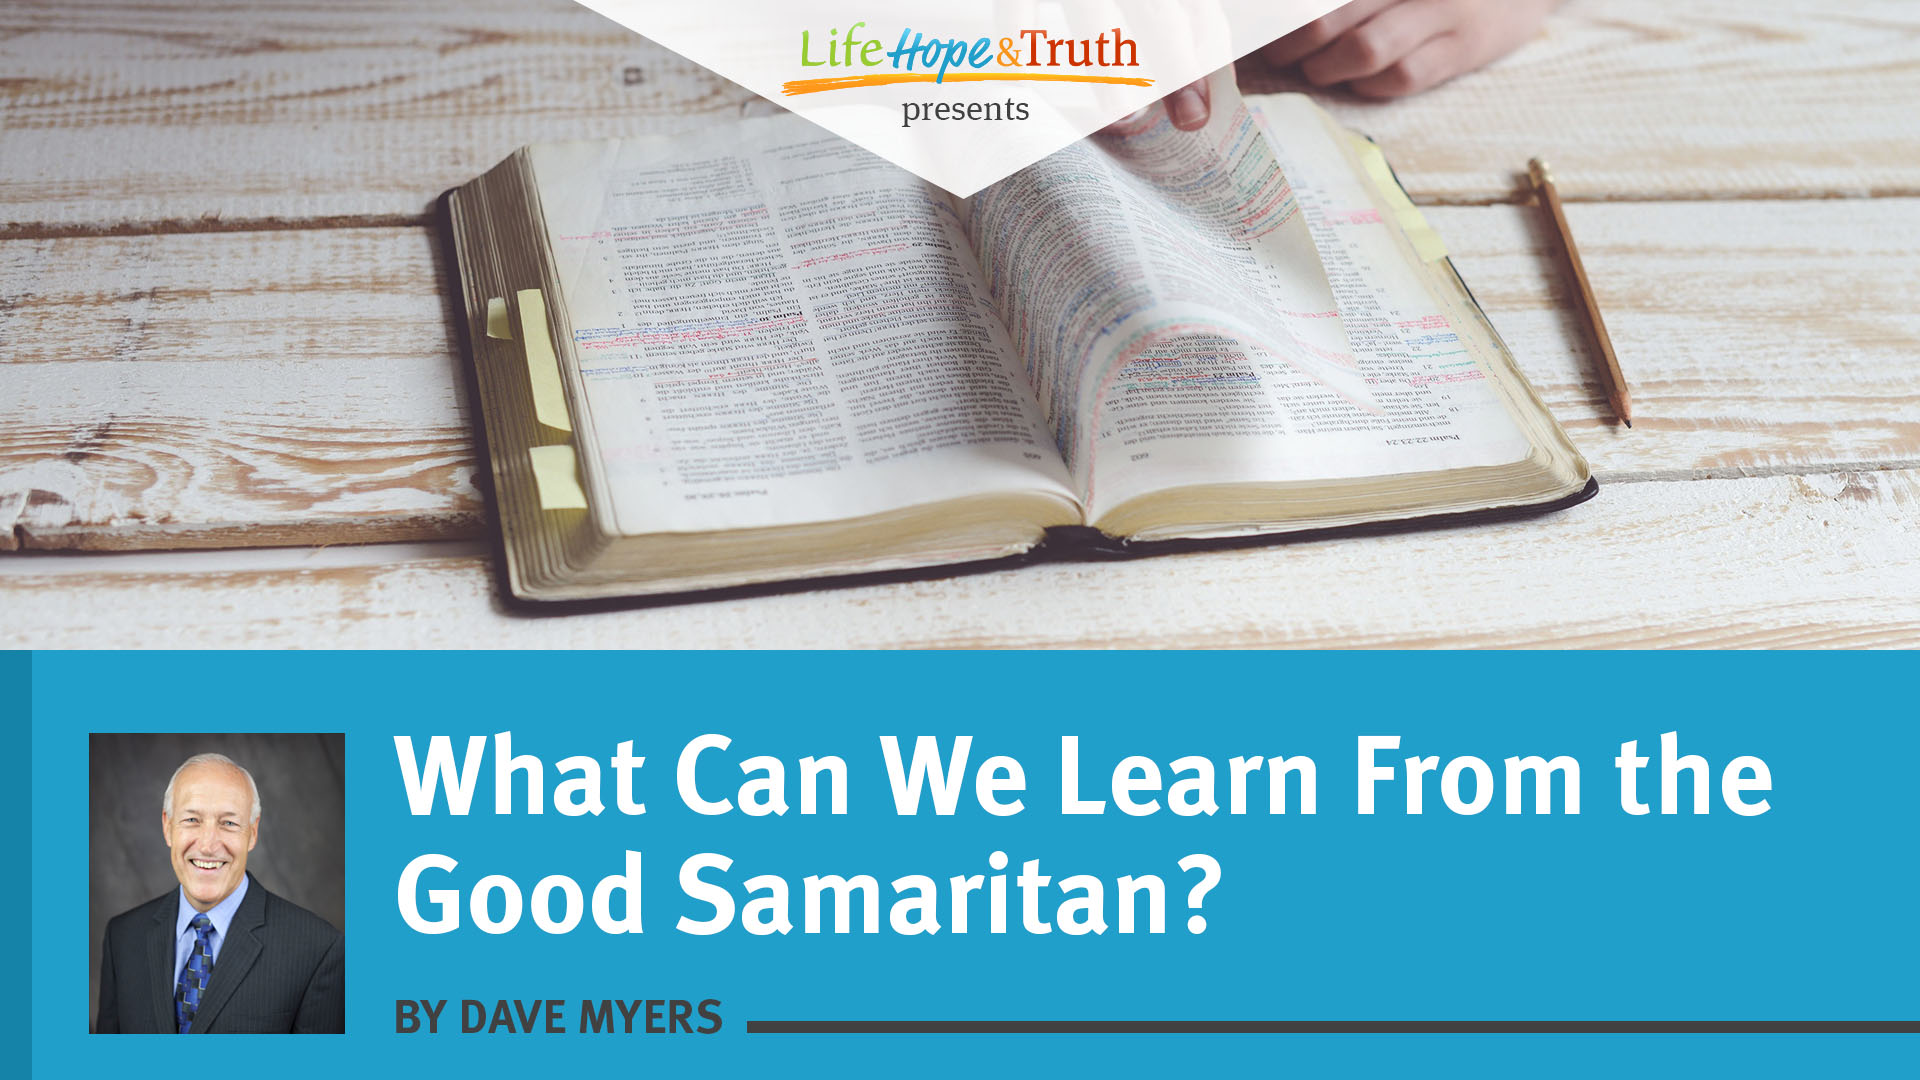 What Can We Learn From the Good Samaritan?